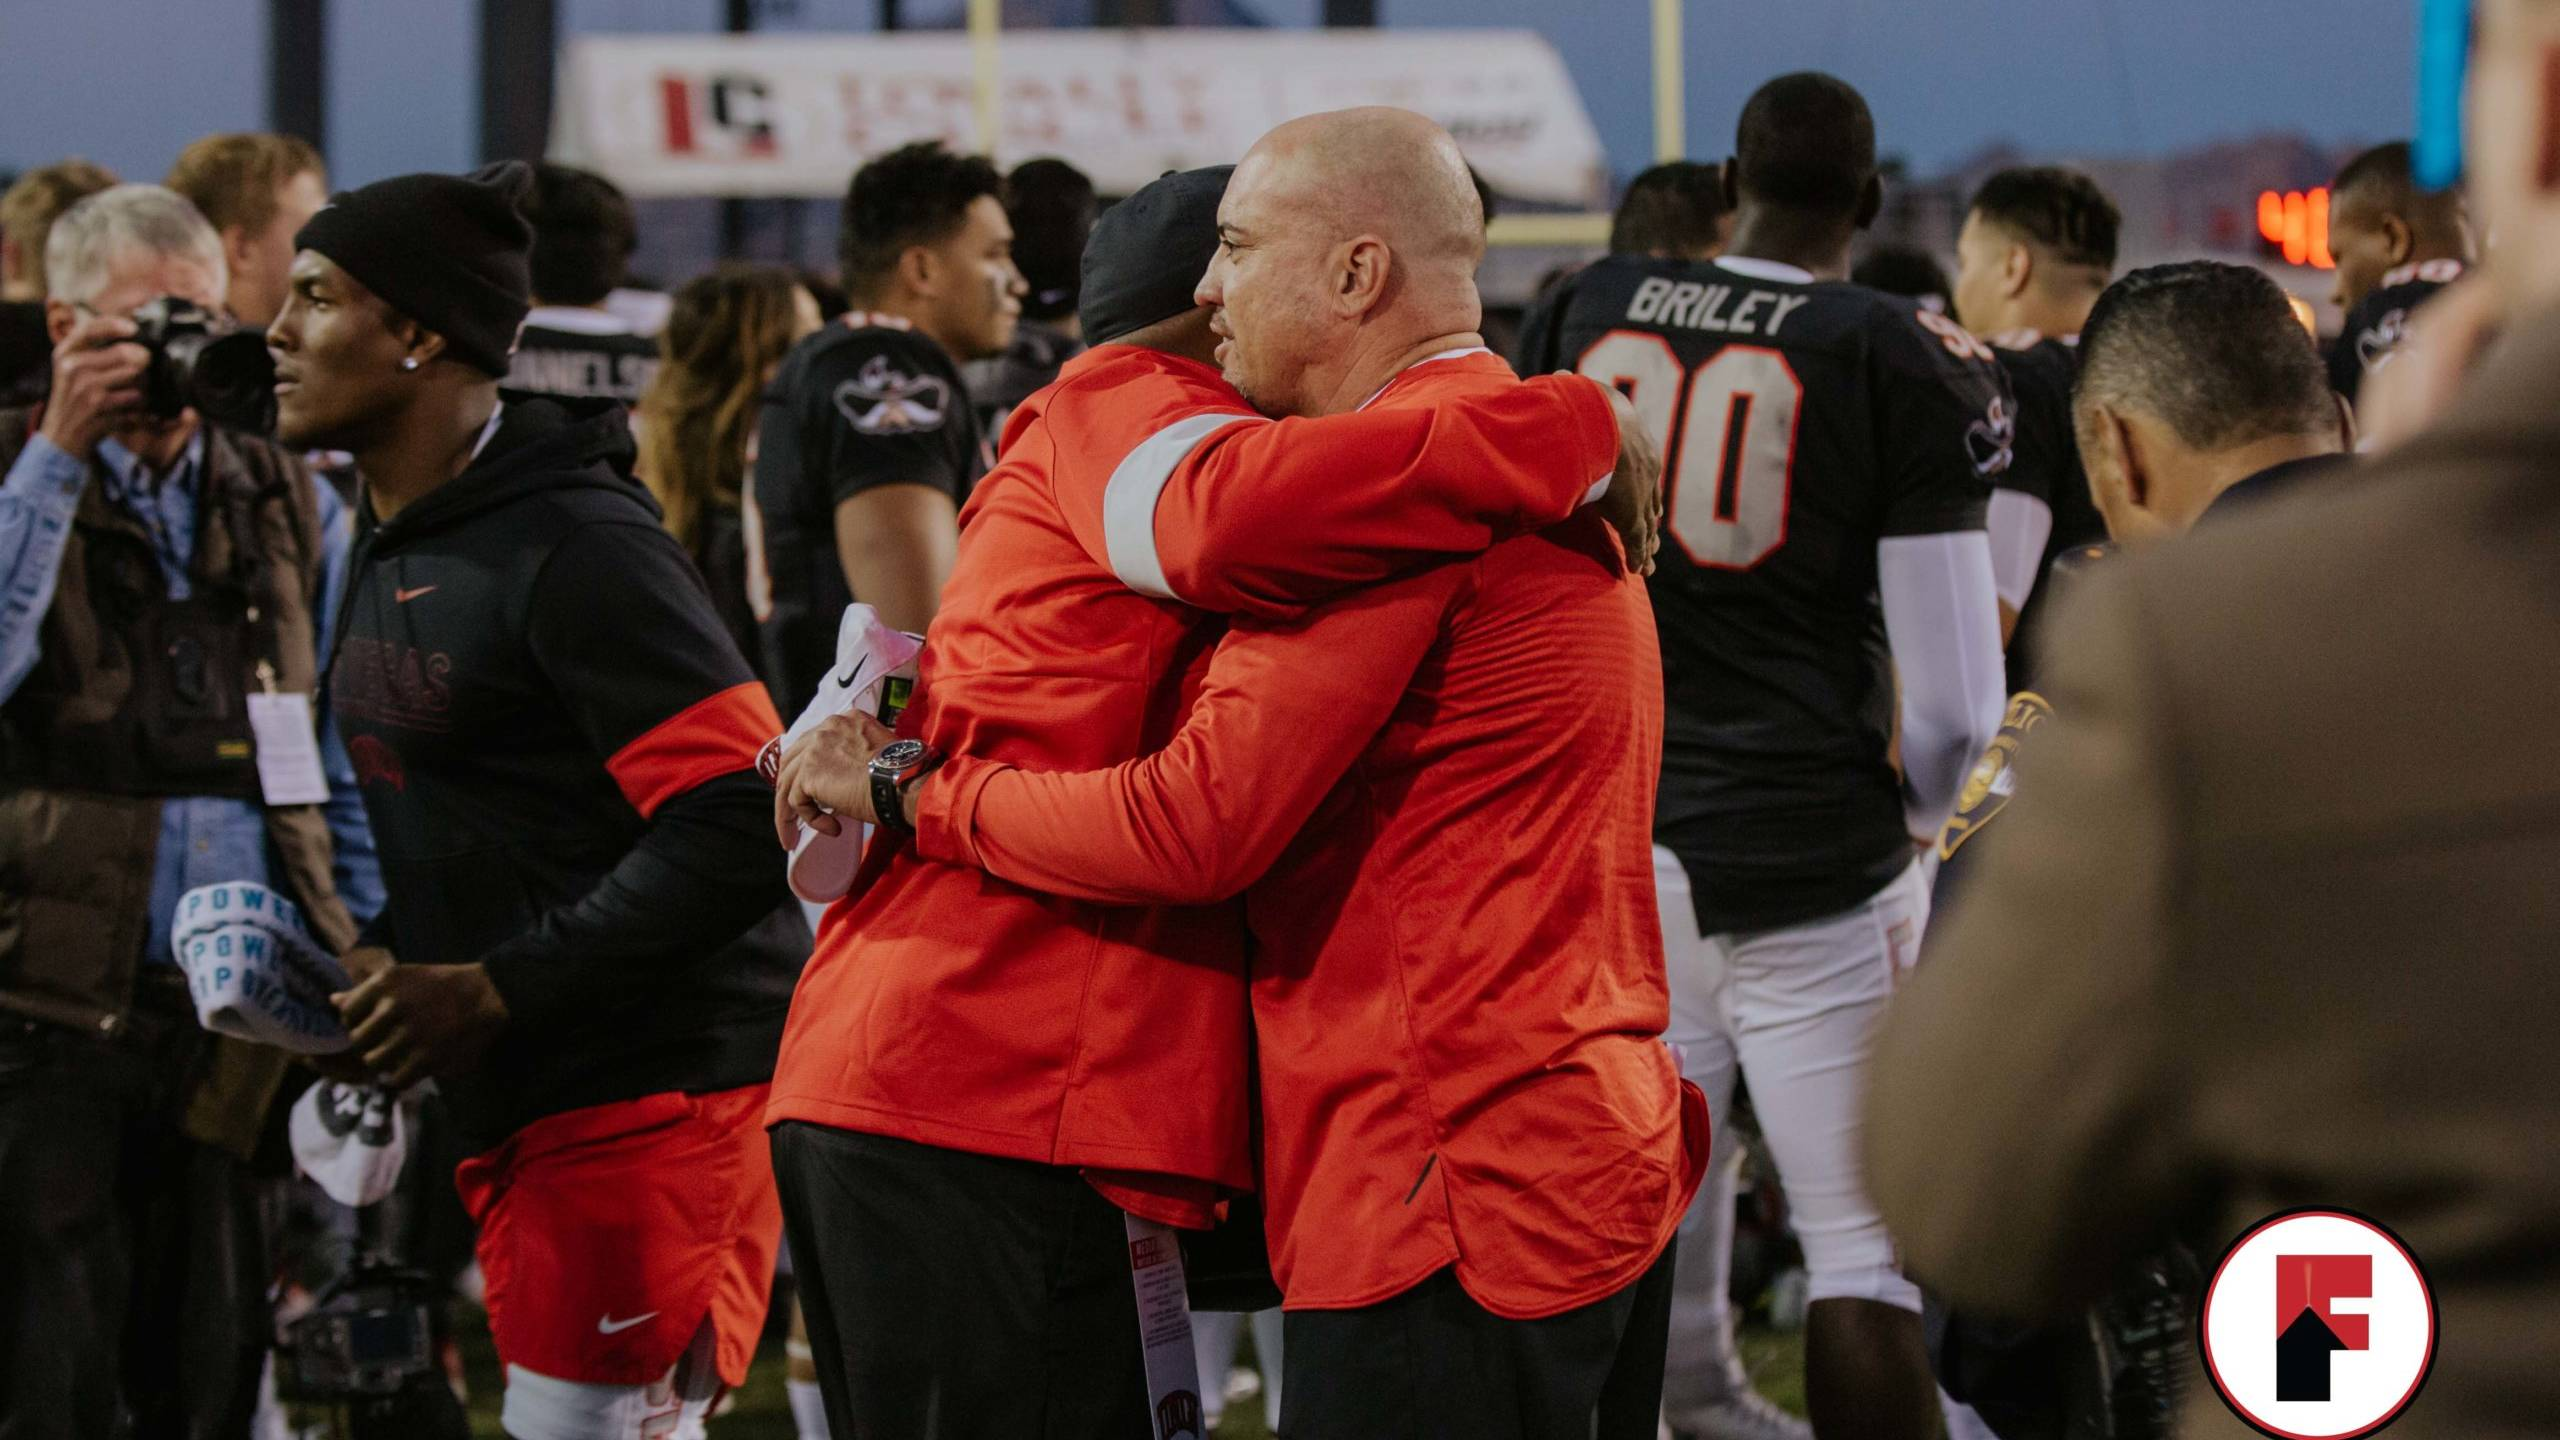 UNLV football life after sanchez - unlv football coaching candidates